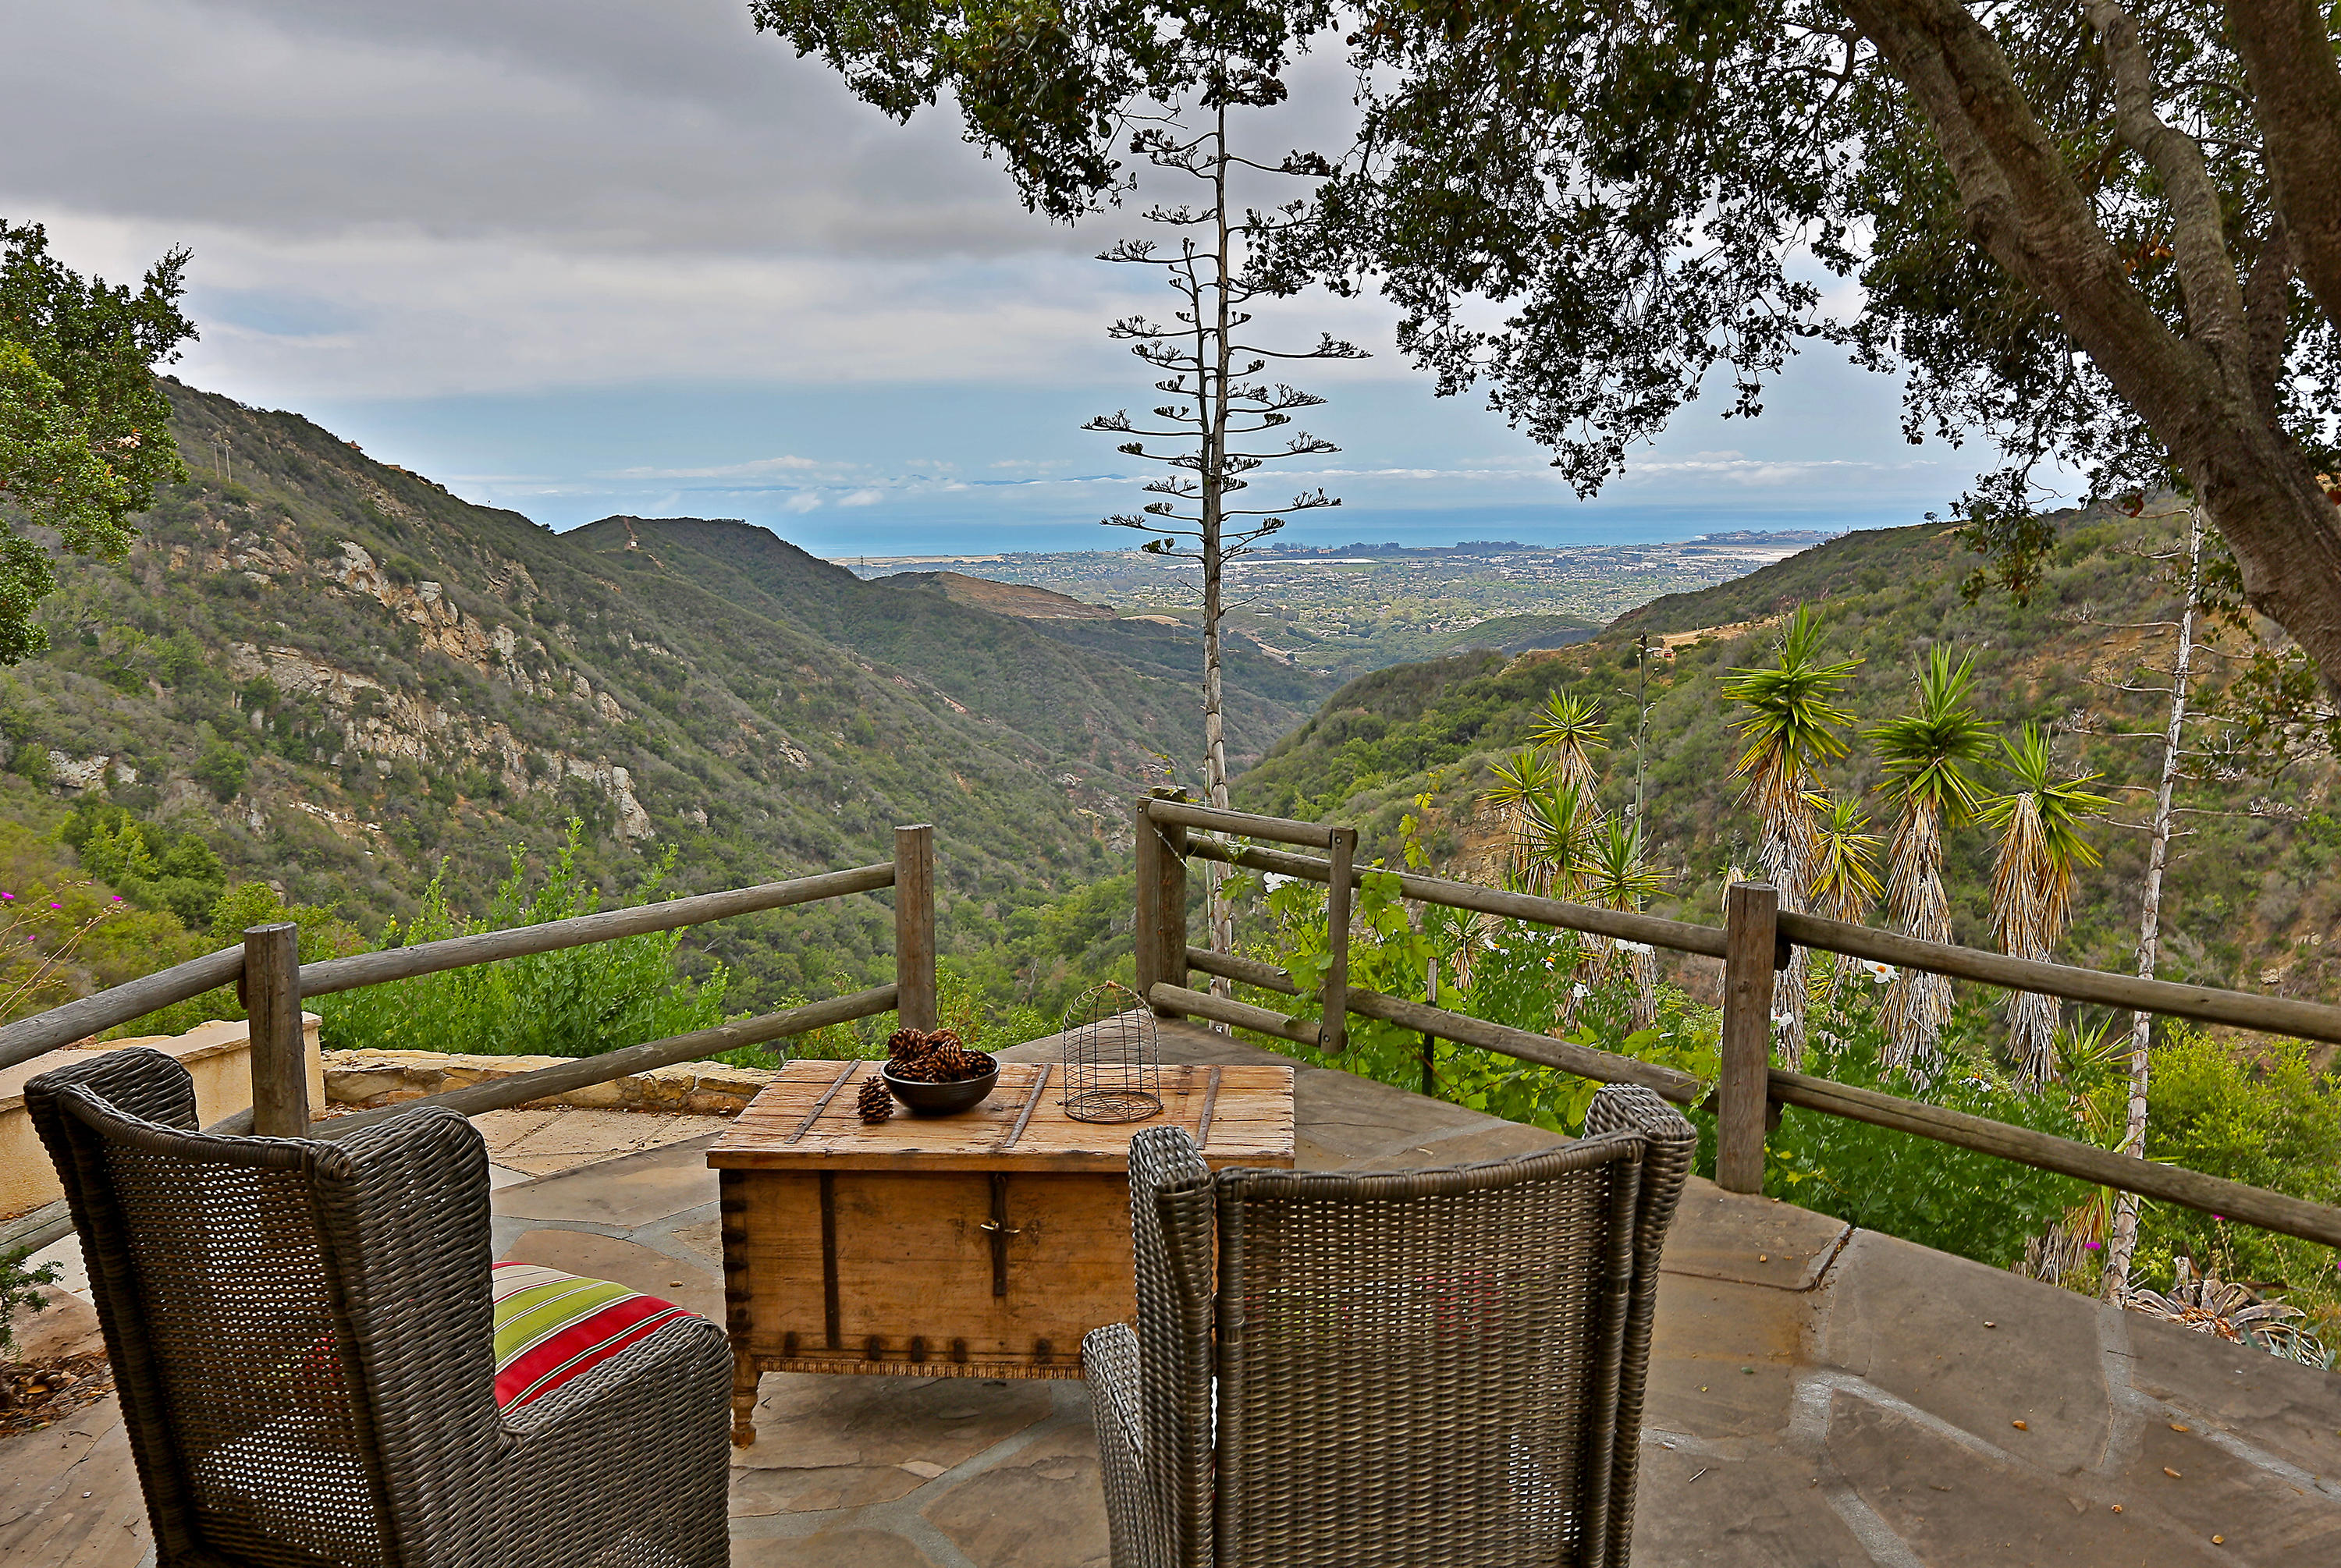 Property photo for 23 San Marcos Trout Clb Santa Barbara, California 93105 - 16-1587